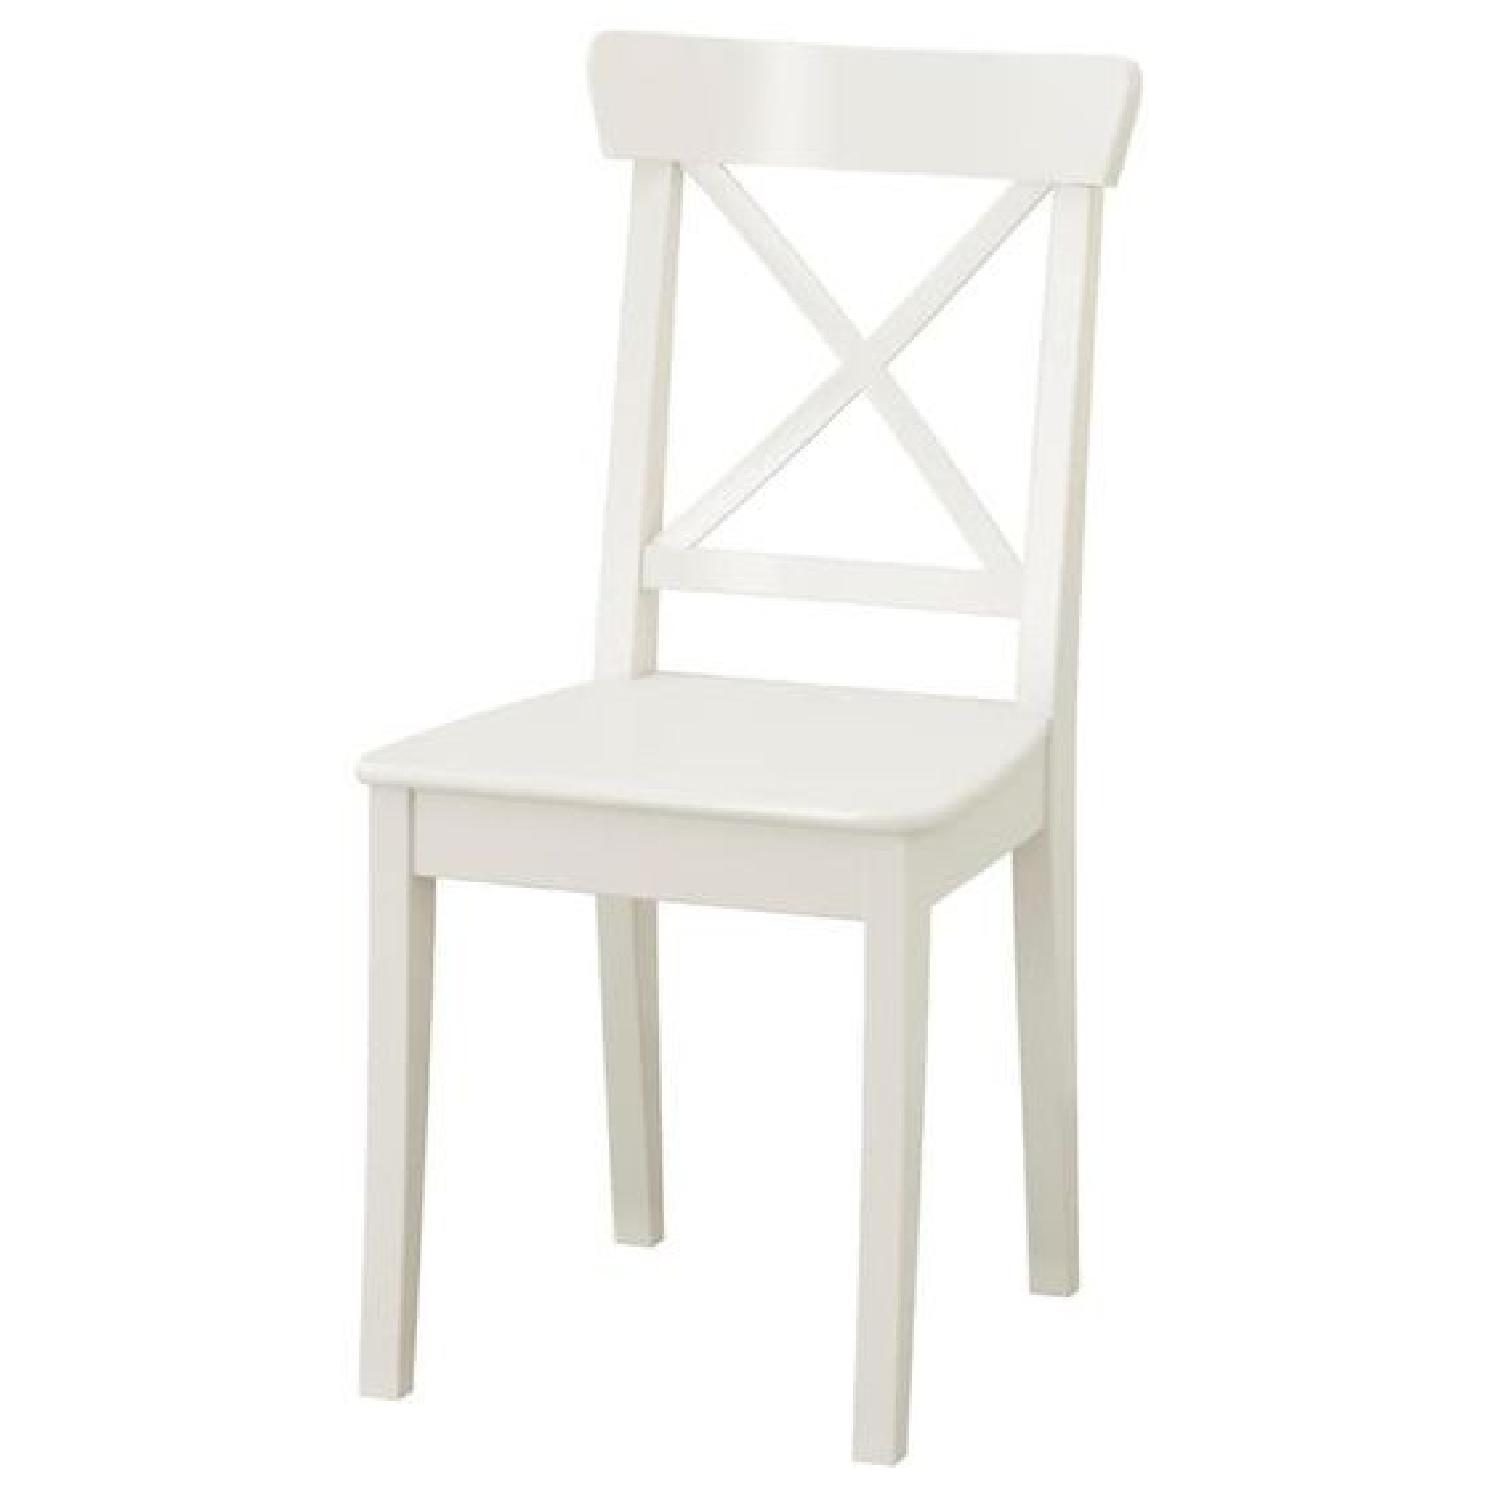 Ikea Ingolf White Dining Chairs - image-0